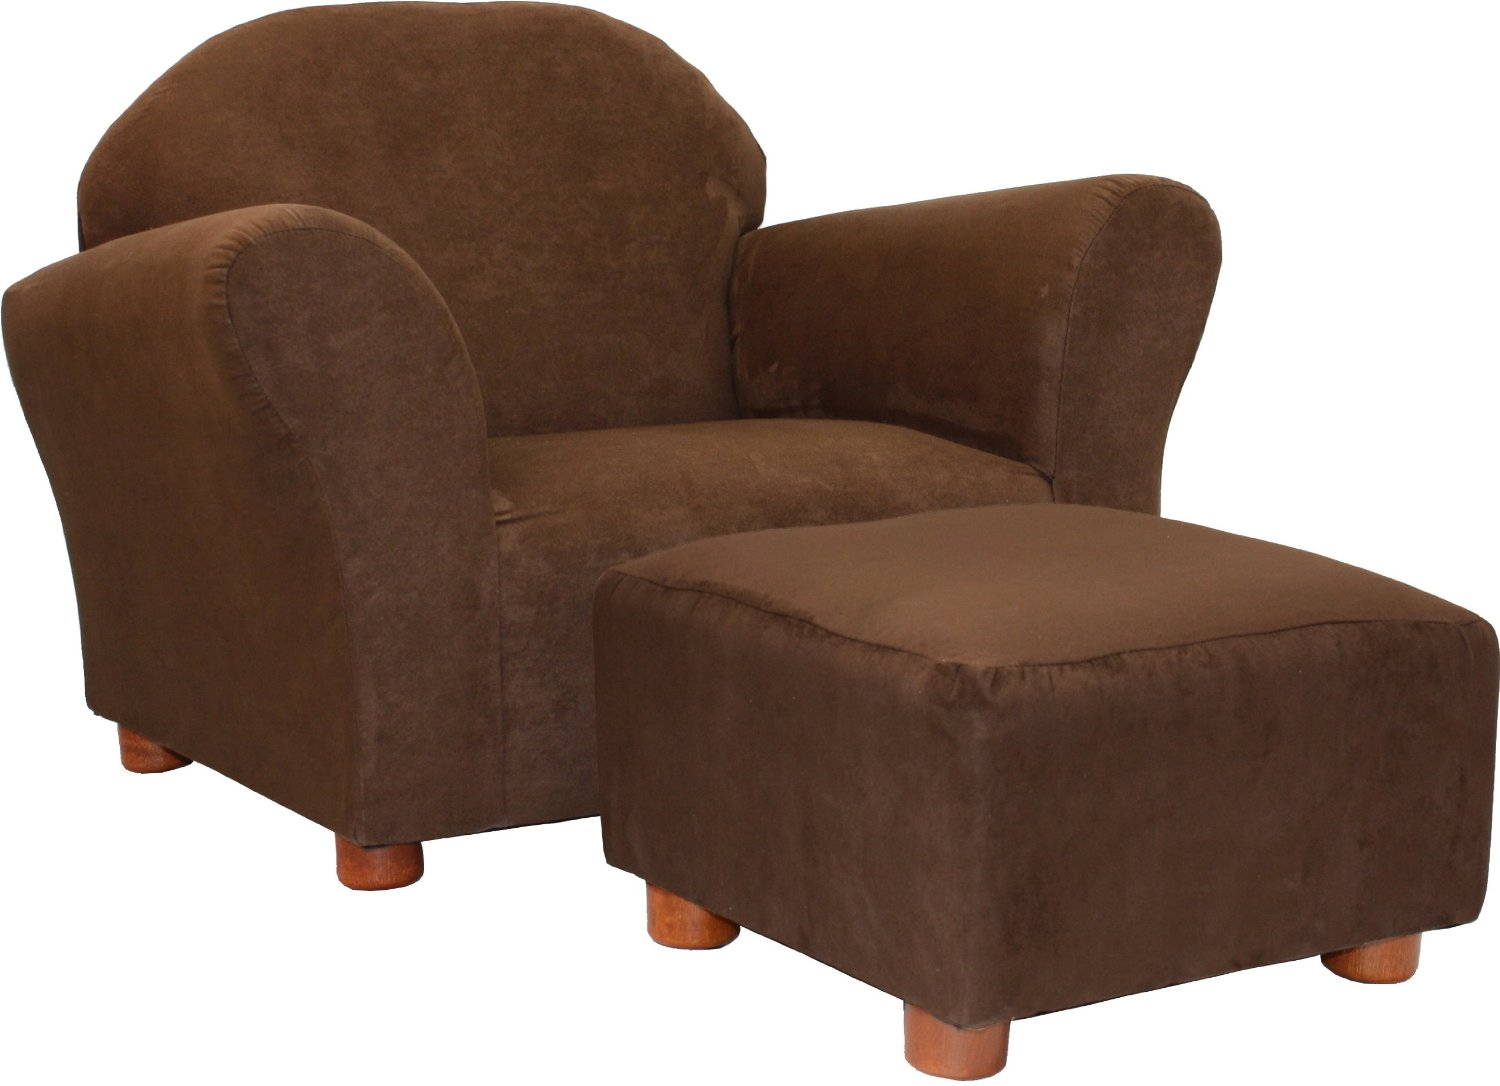 Total Fab Kids & Toddler Chair and Ottoman Sets